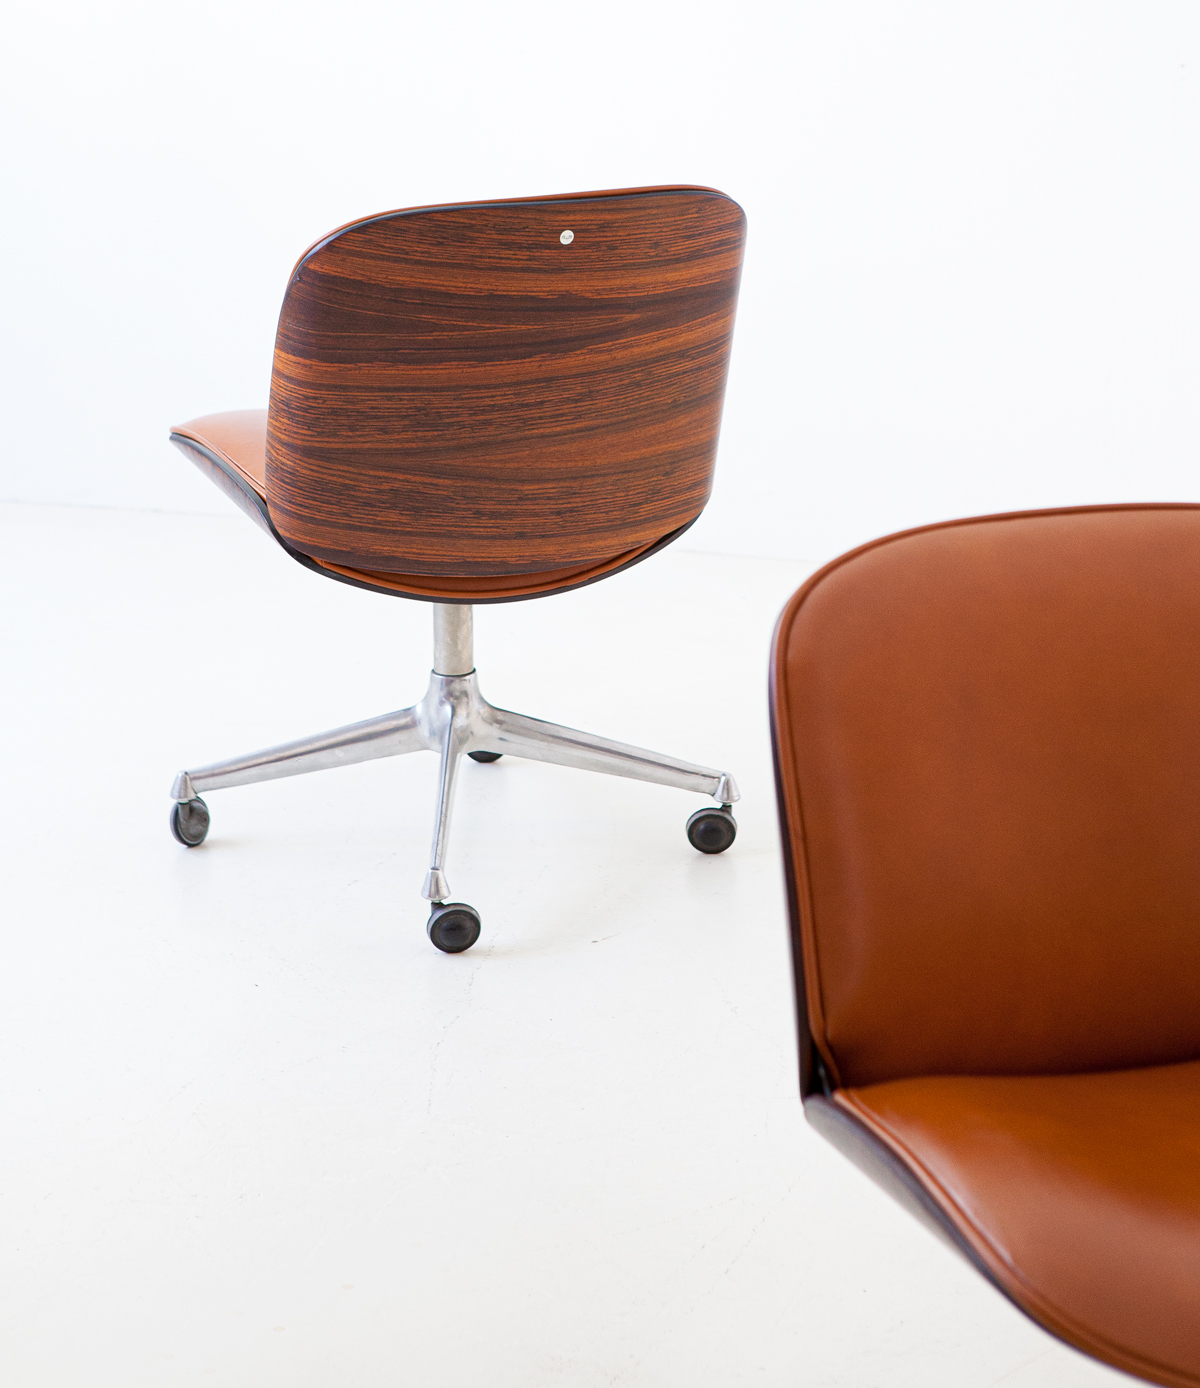 1950s-rosewood-and-cognac-leather-swivel-chair-by-ico-parisi-for-mim-4-se328